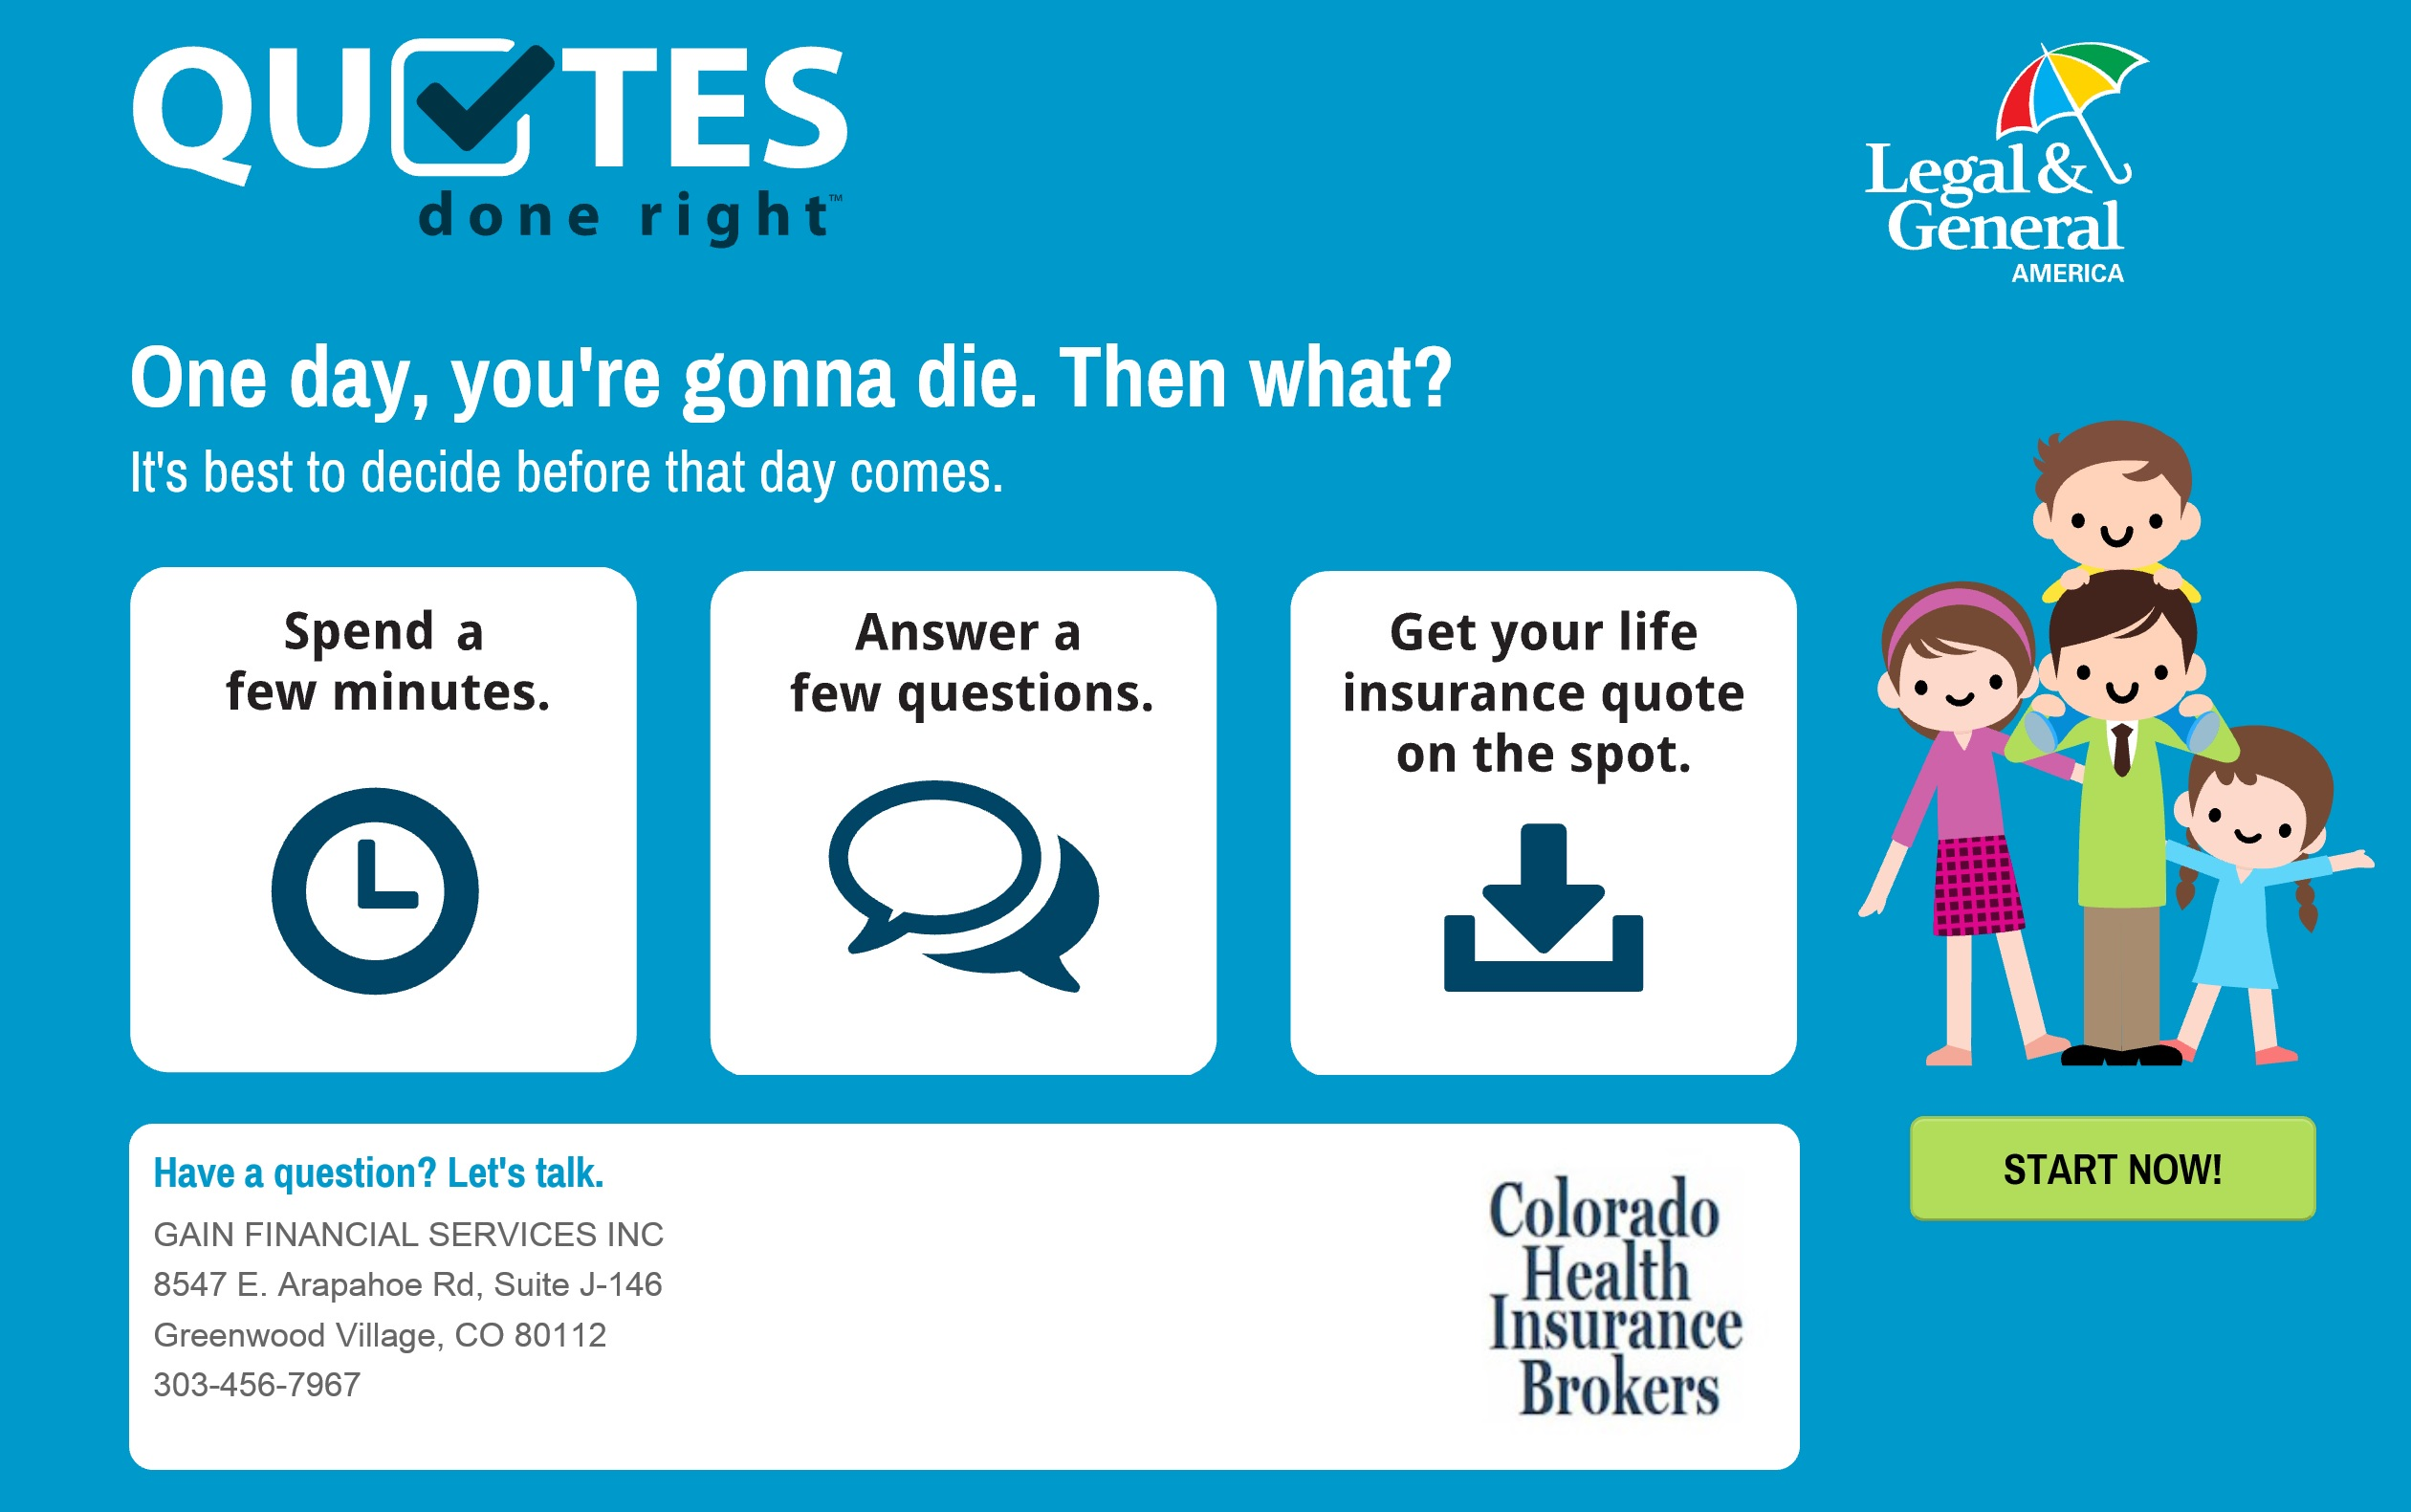 Metlife Life Insurance Quotes Colorado Health Insurance  Fast And Affordable Life Insurance